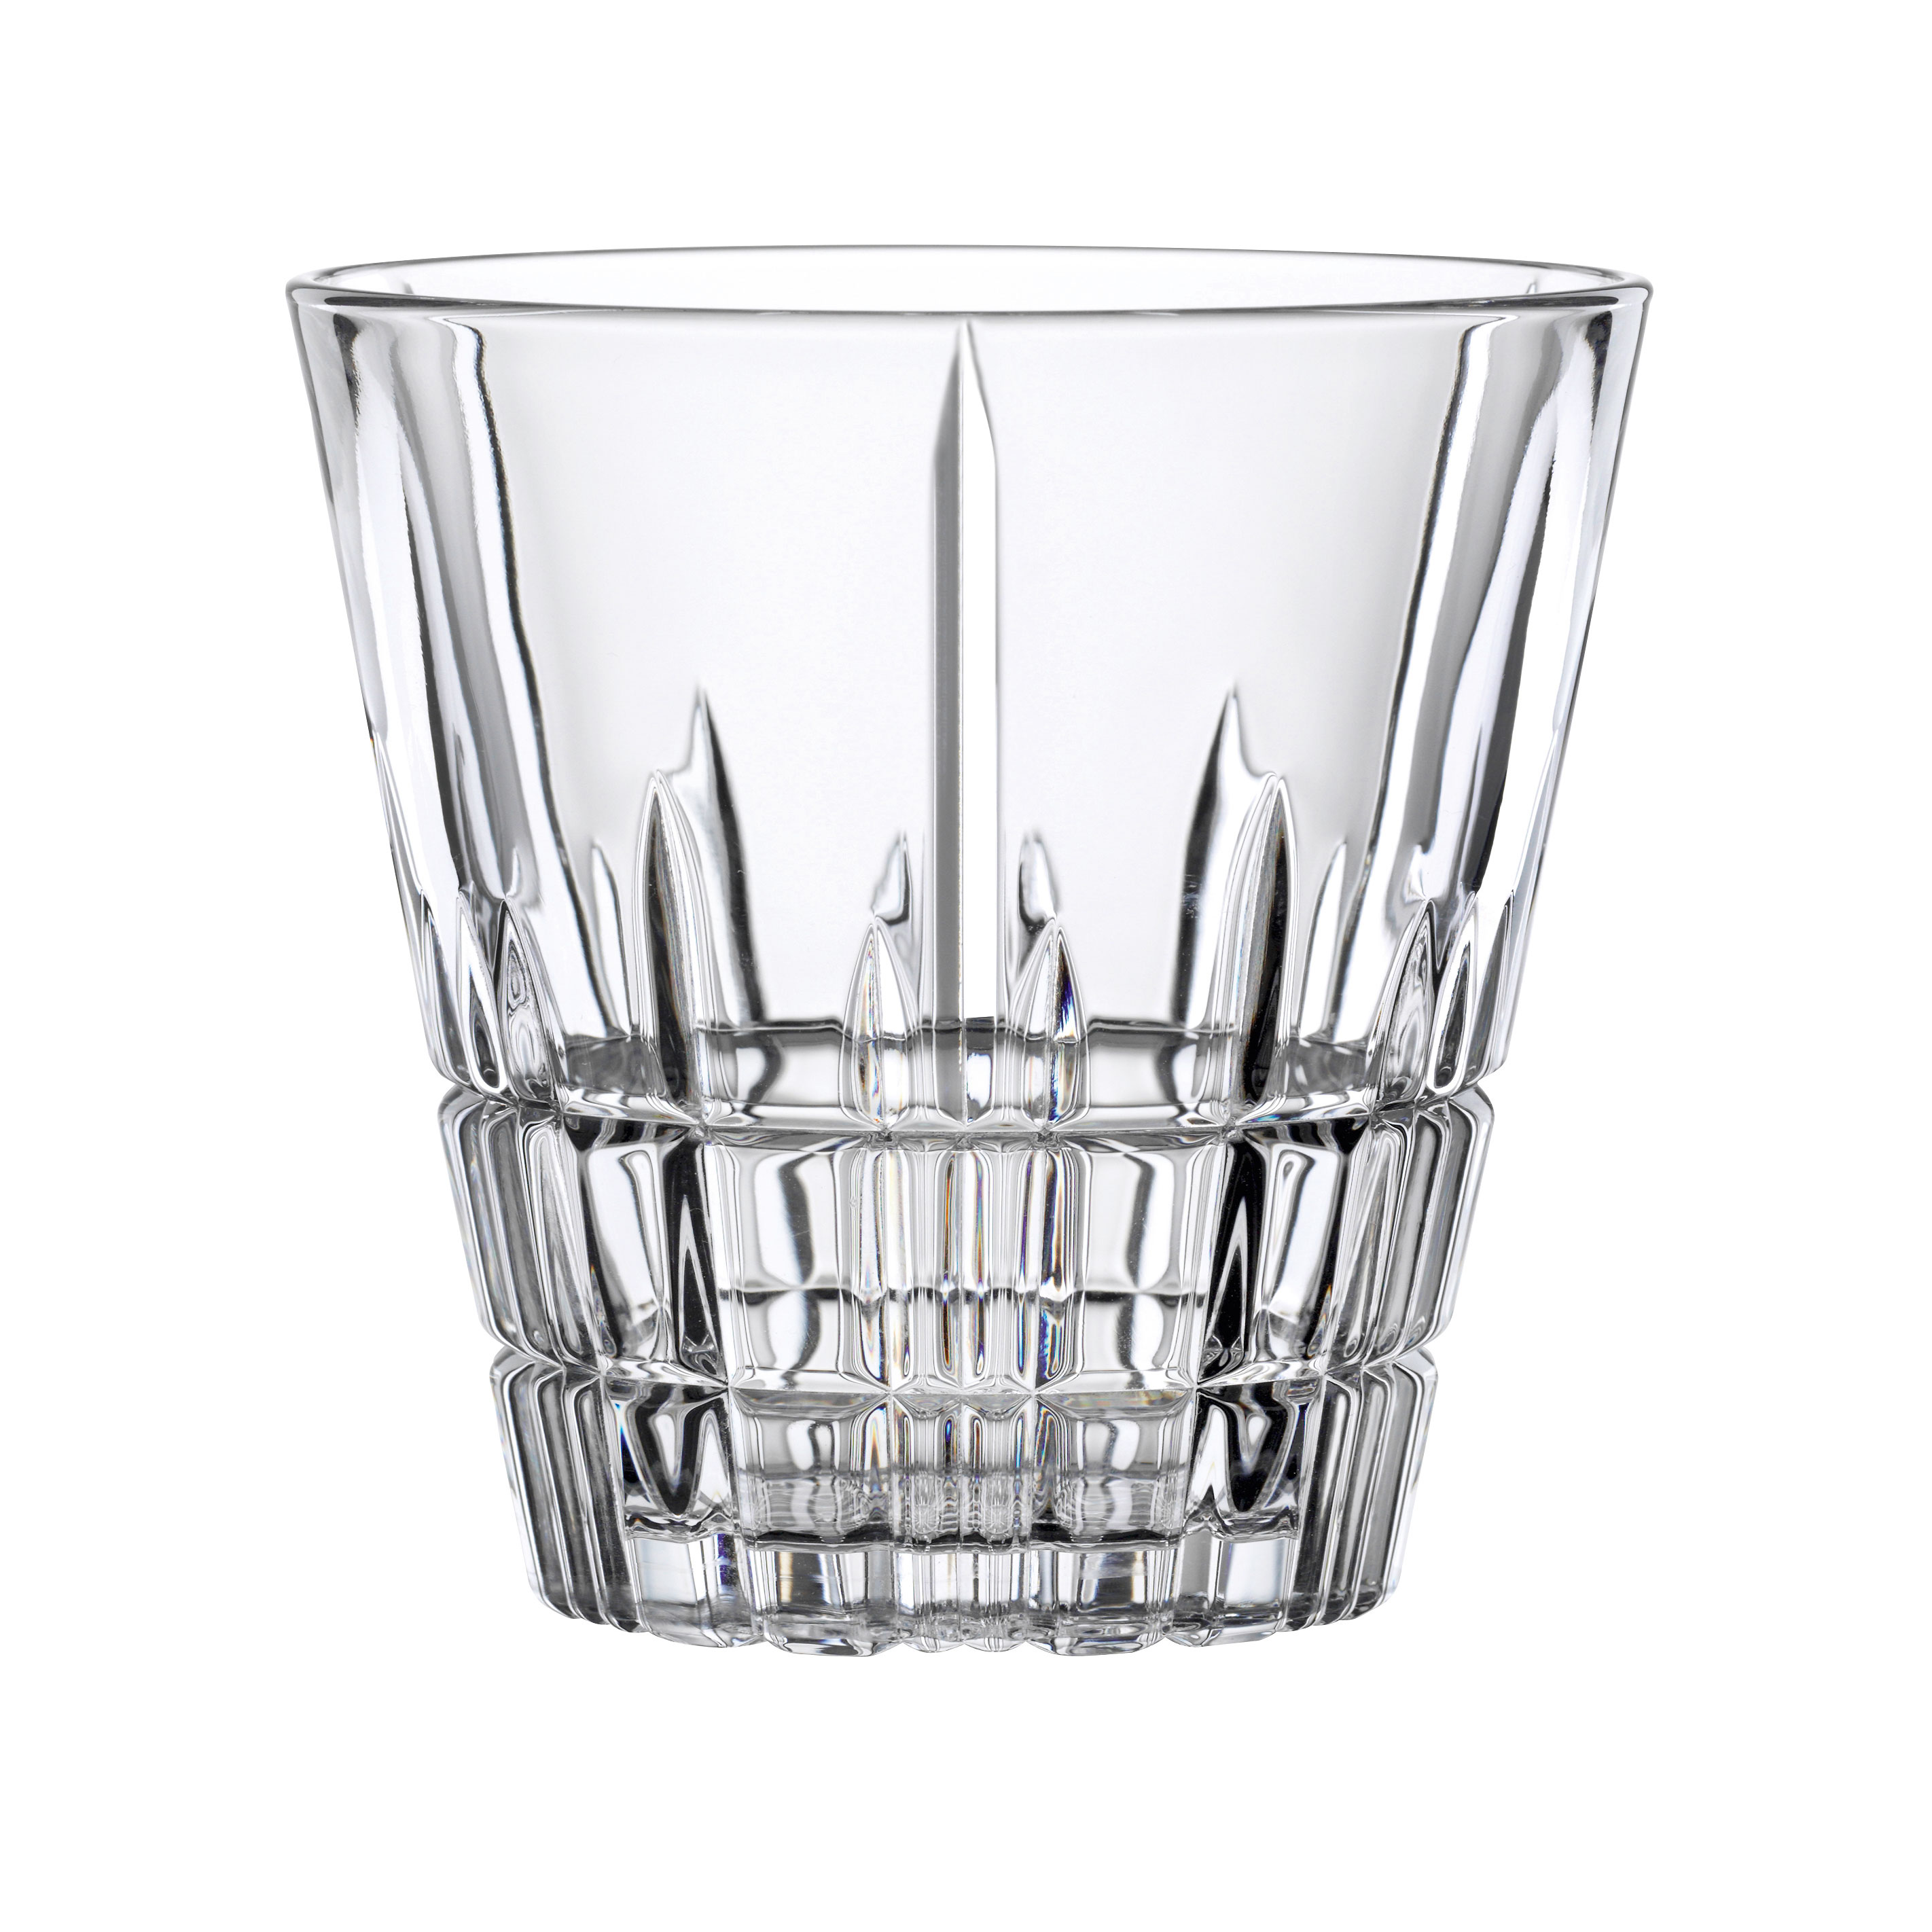 Libbey Glass 4508042 glass, water / tumbler